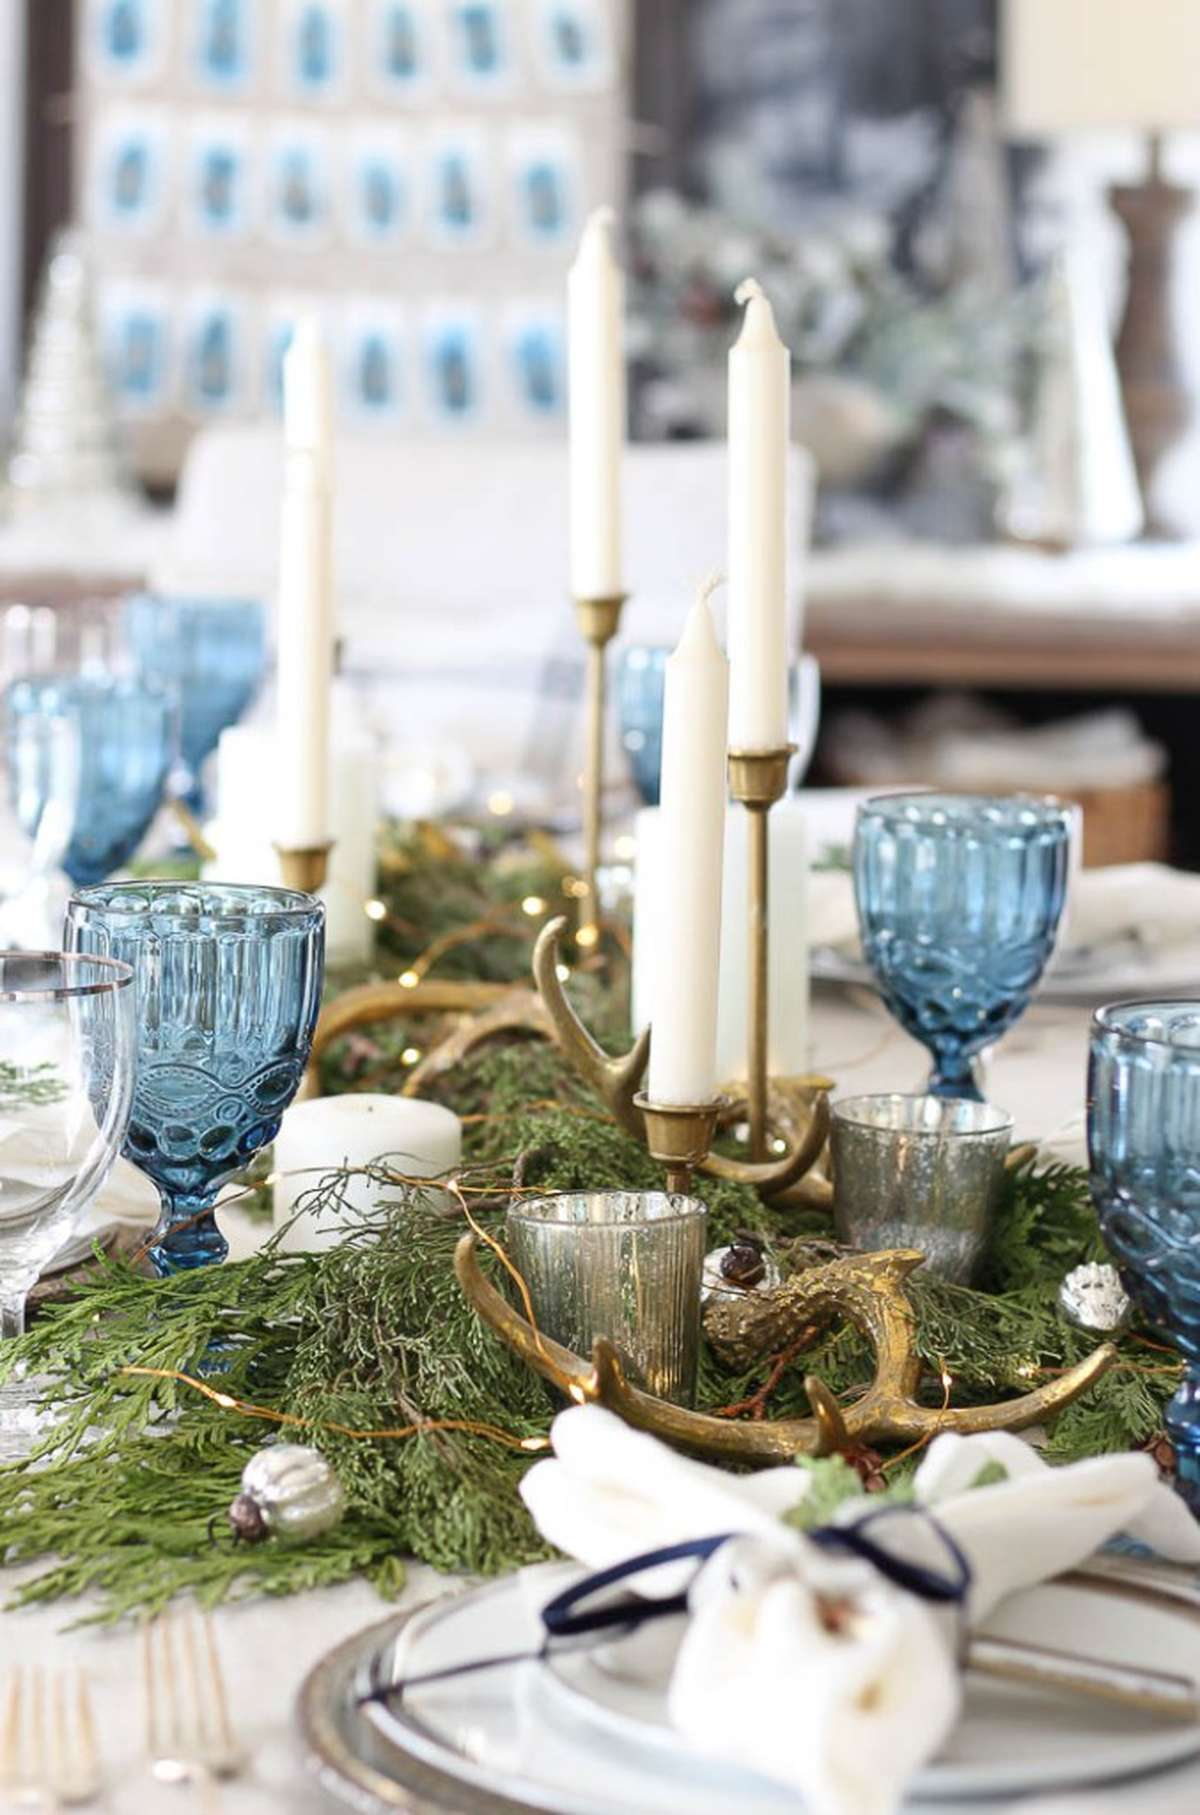 How To Plan A Woodland Themed Wedding For Your Party